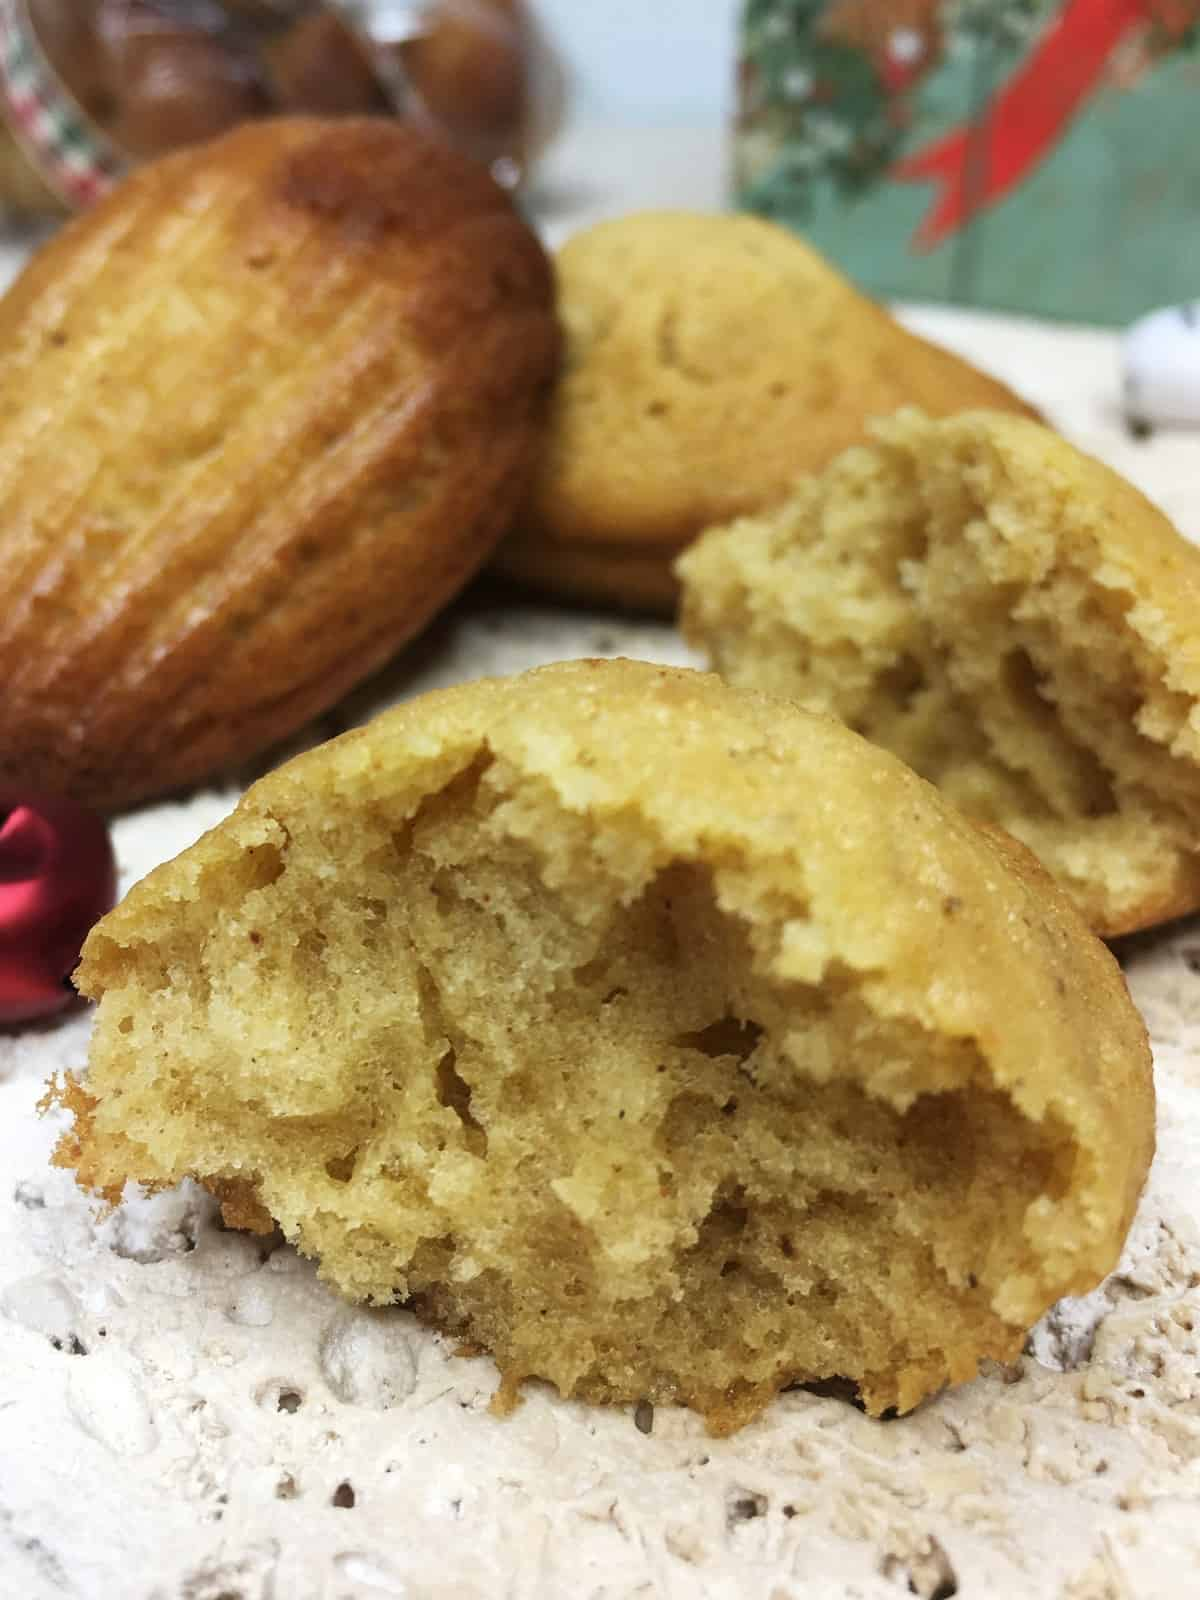 Cut gingerbread madeleine with other spicy madeleines and a Christmas gift box in the background